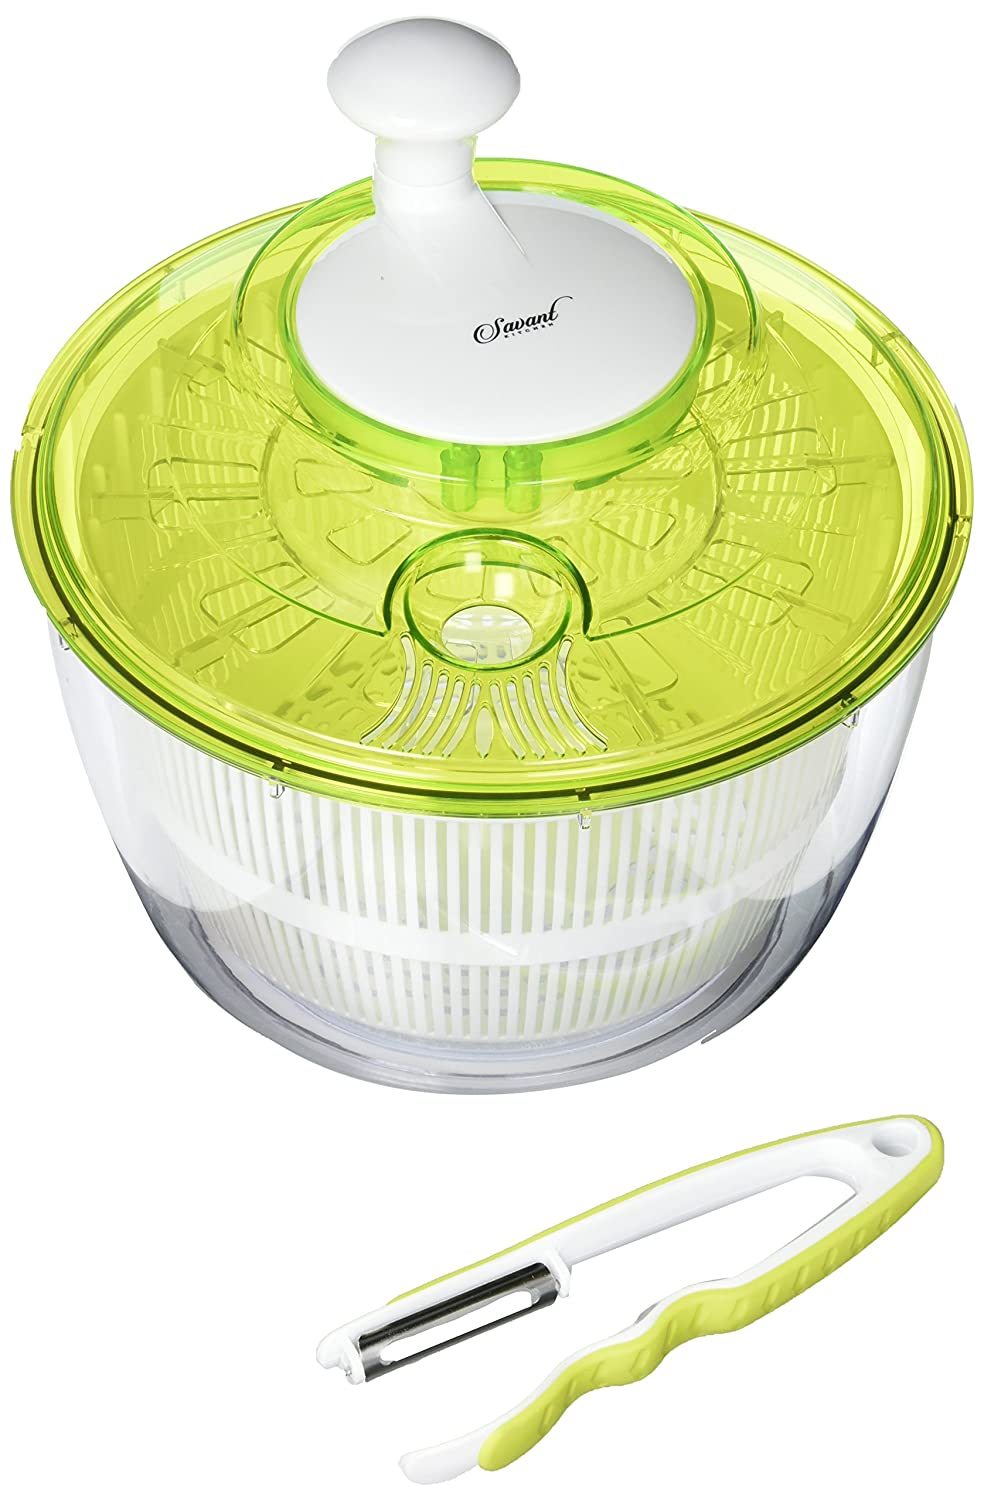 Jumbo Salad Spinner - High Quality Large Salad Set 5L - Easily Spin & Dry Salads & Vegetables - Perpetual Peeler and eBook included Savant Kitchen COMINHKPR98471